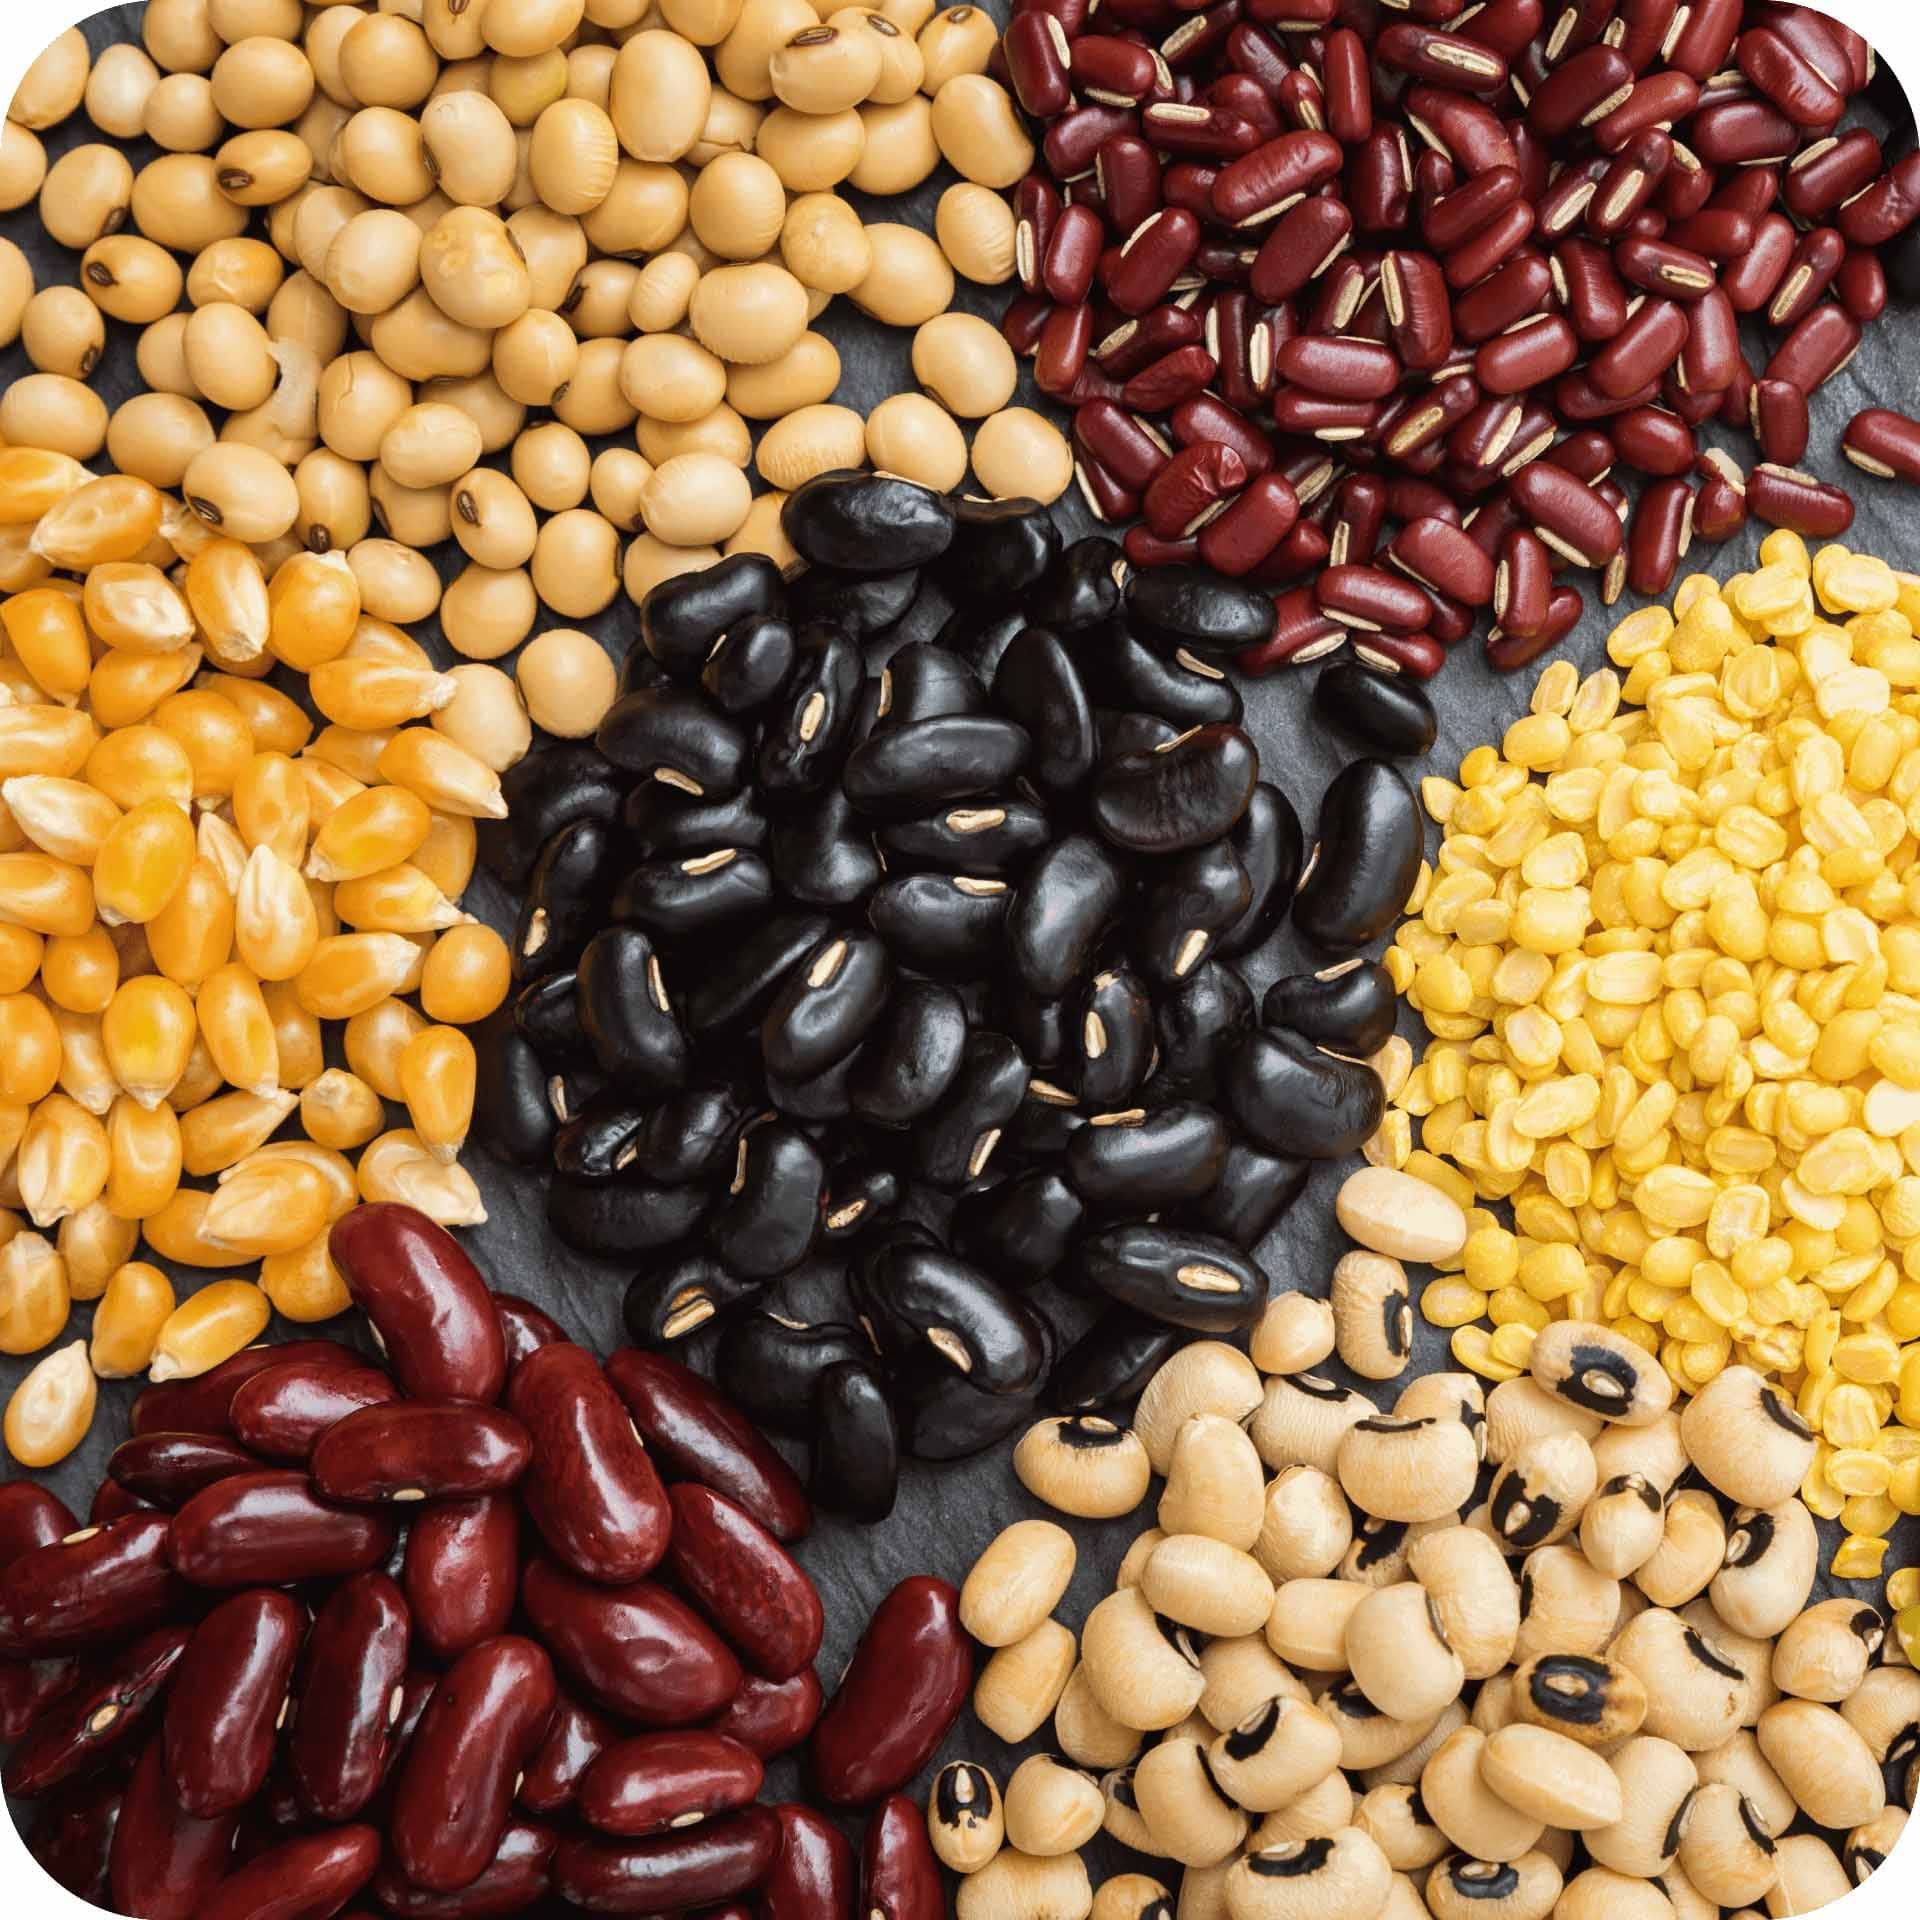 Healthy grains and pulses